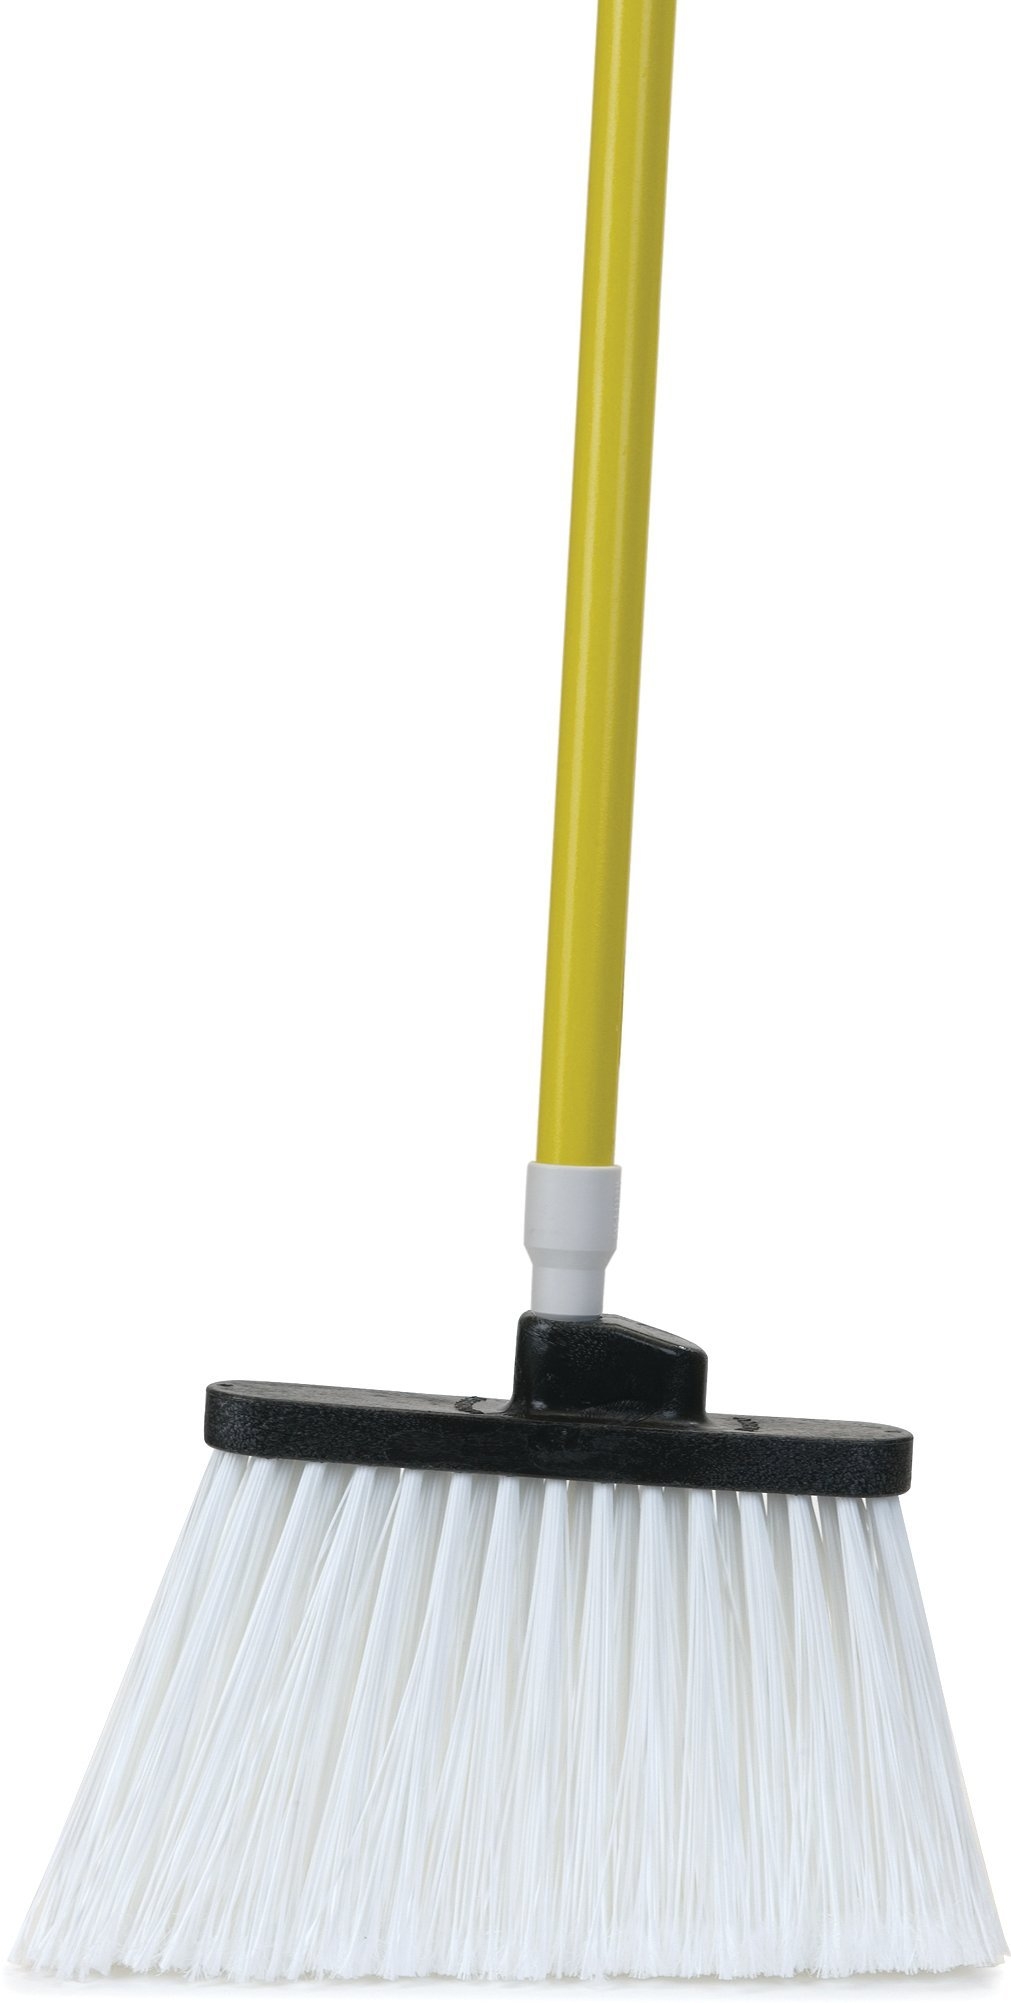 Carlisle 4122504 Sparta Commercial Fiberglass Handle with Self-Locking Flex-Tip, 48'', Yellow (Pack of 12)